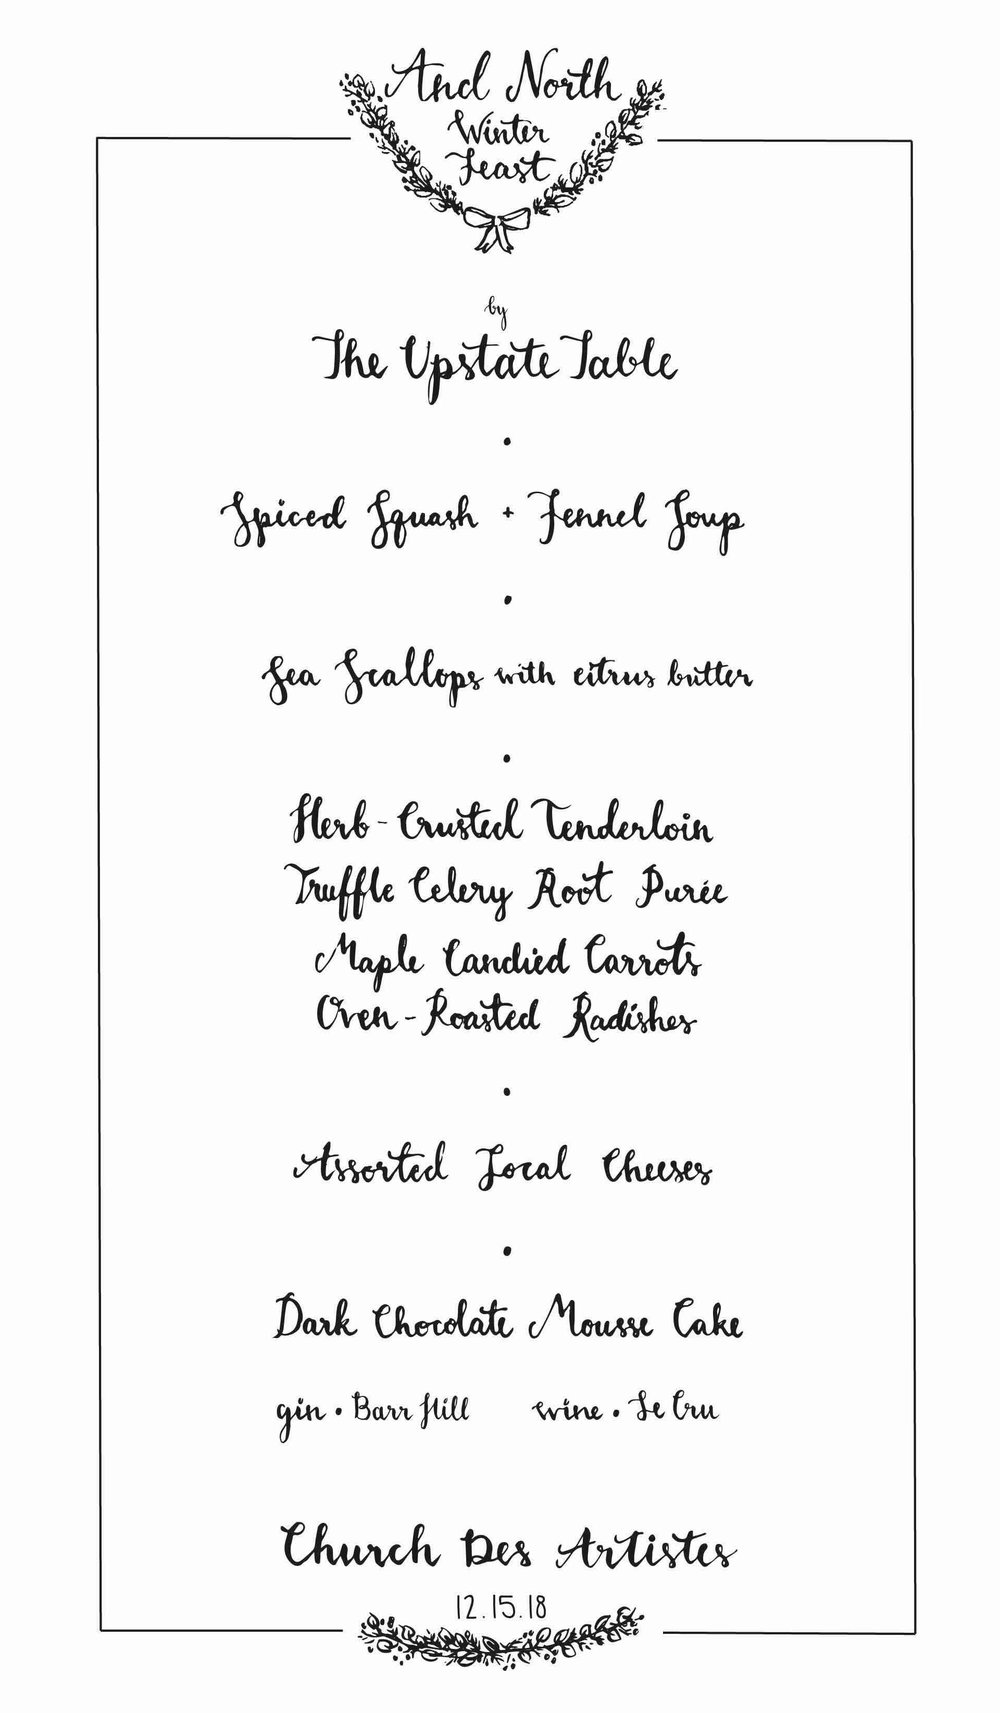 And North Winter Feast Menu